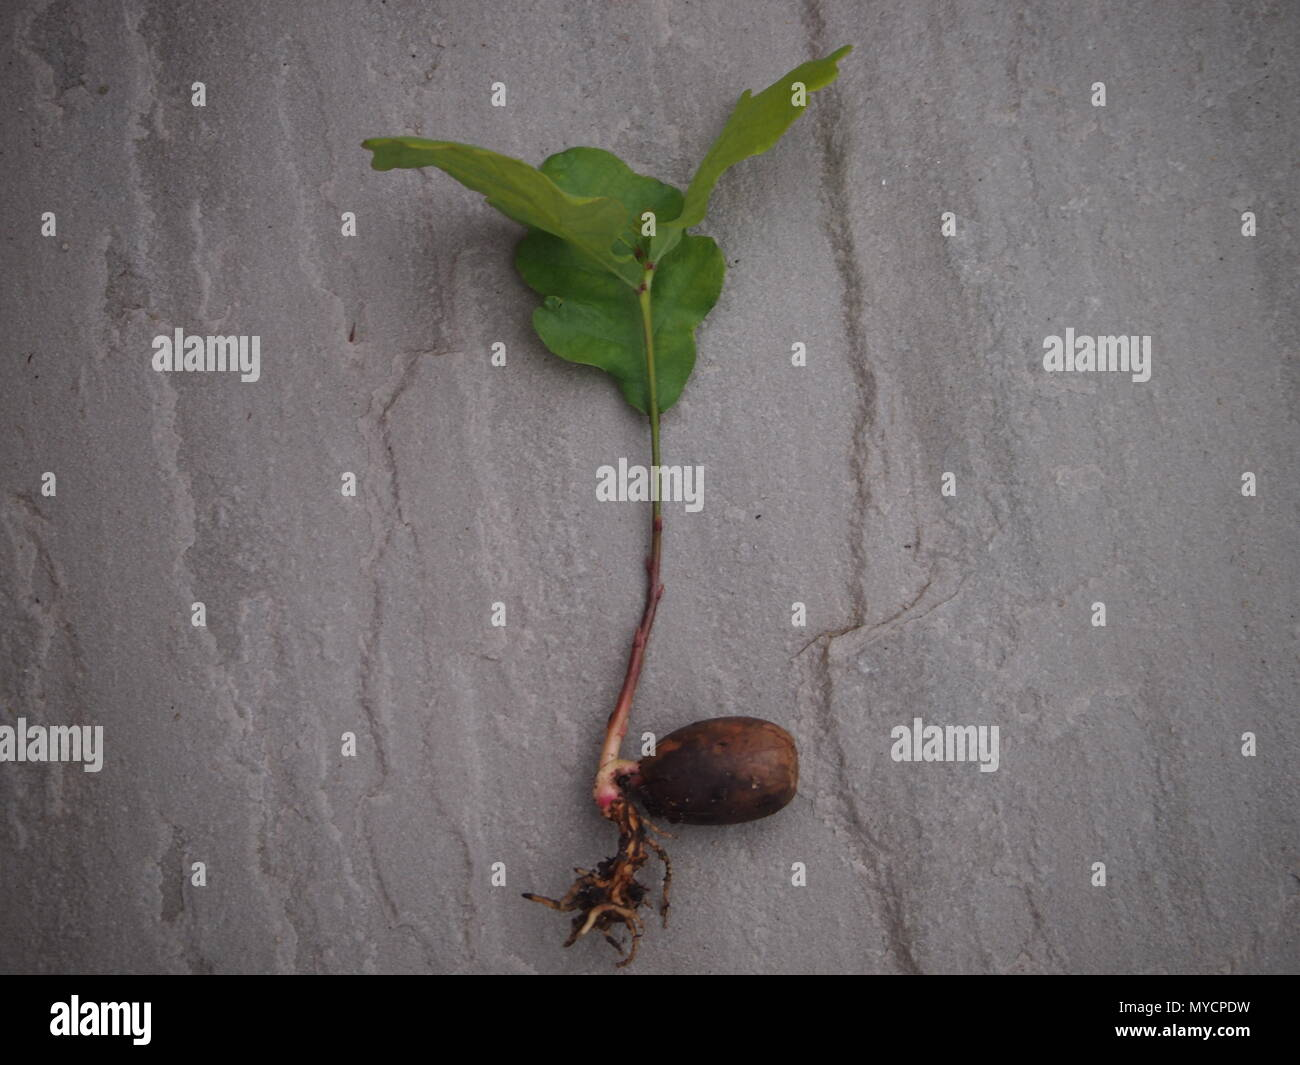 Mighty oaks from little acorns grow. Green shoots and roots emerging from an acorn. - Stock Image